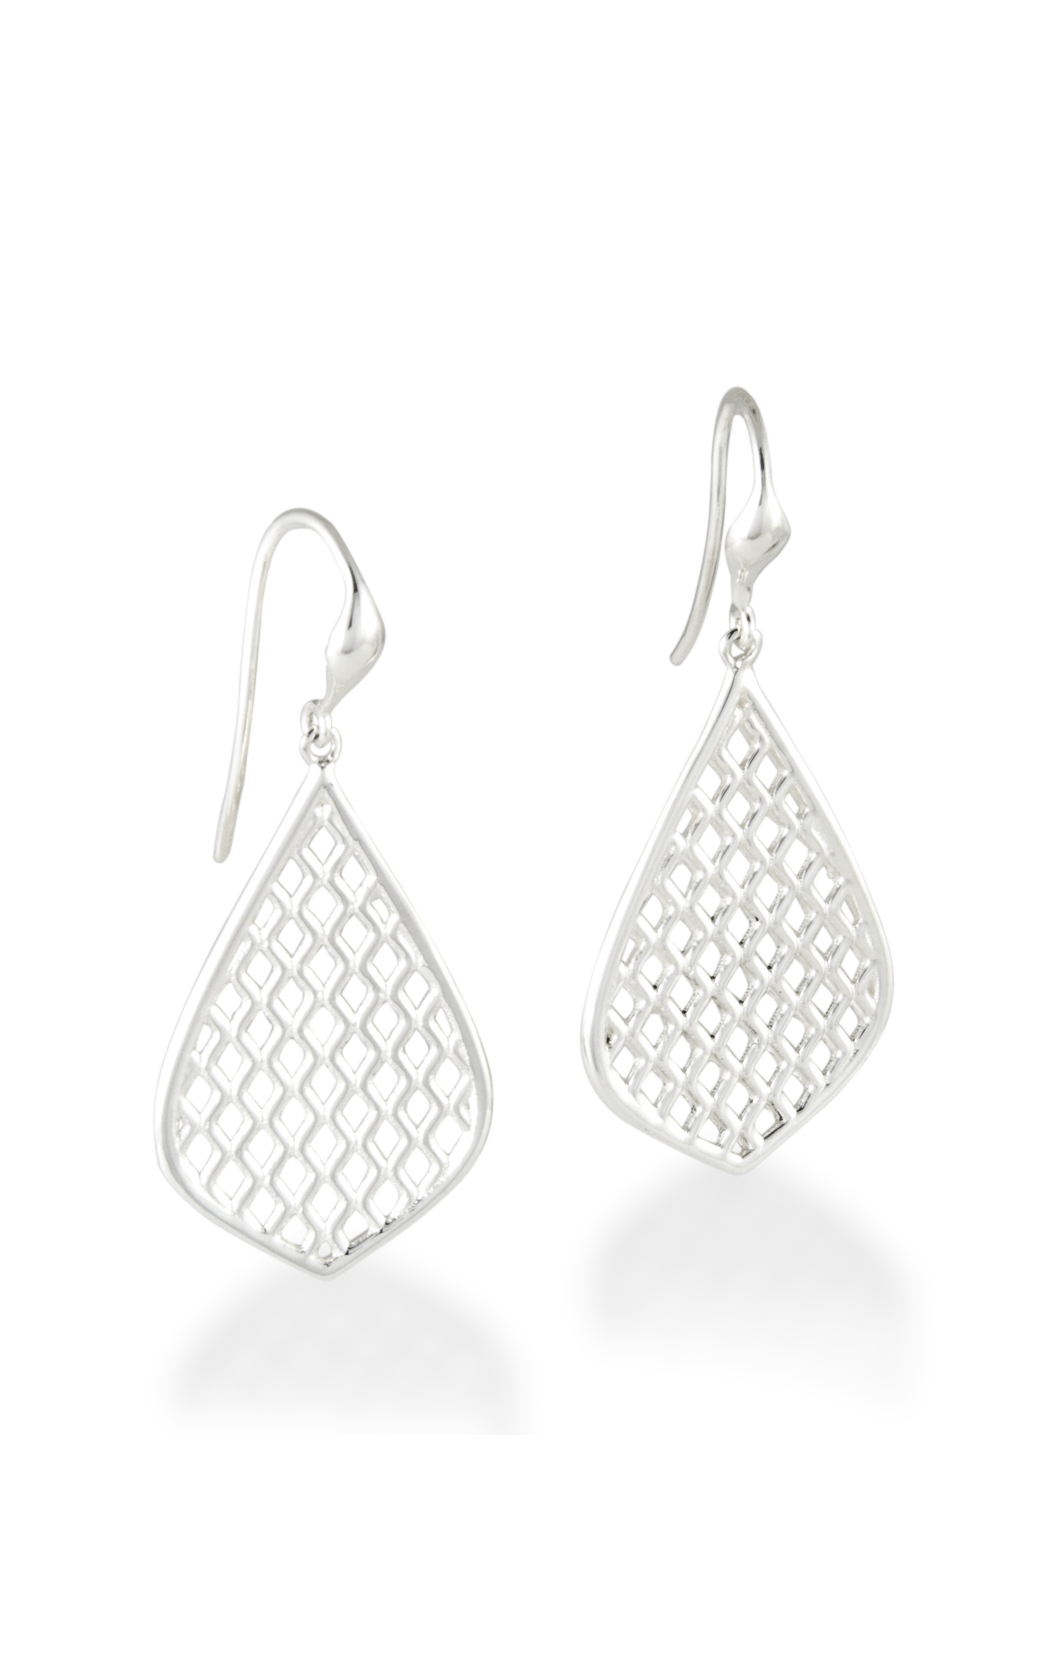 Zina Trellis Earrings B1744 product image